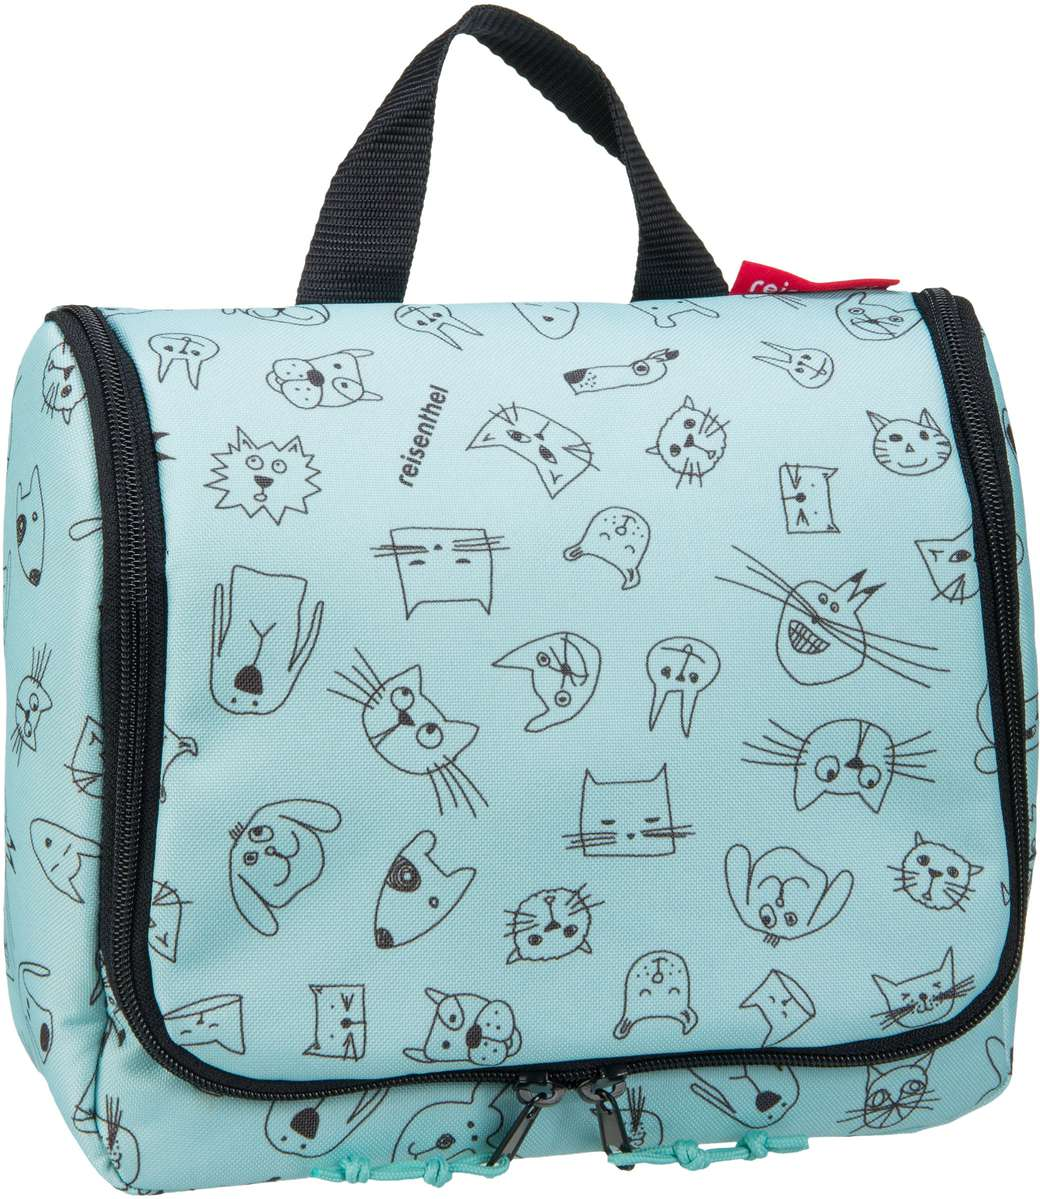 kids toiletbag Cats and Dogs Mint